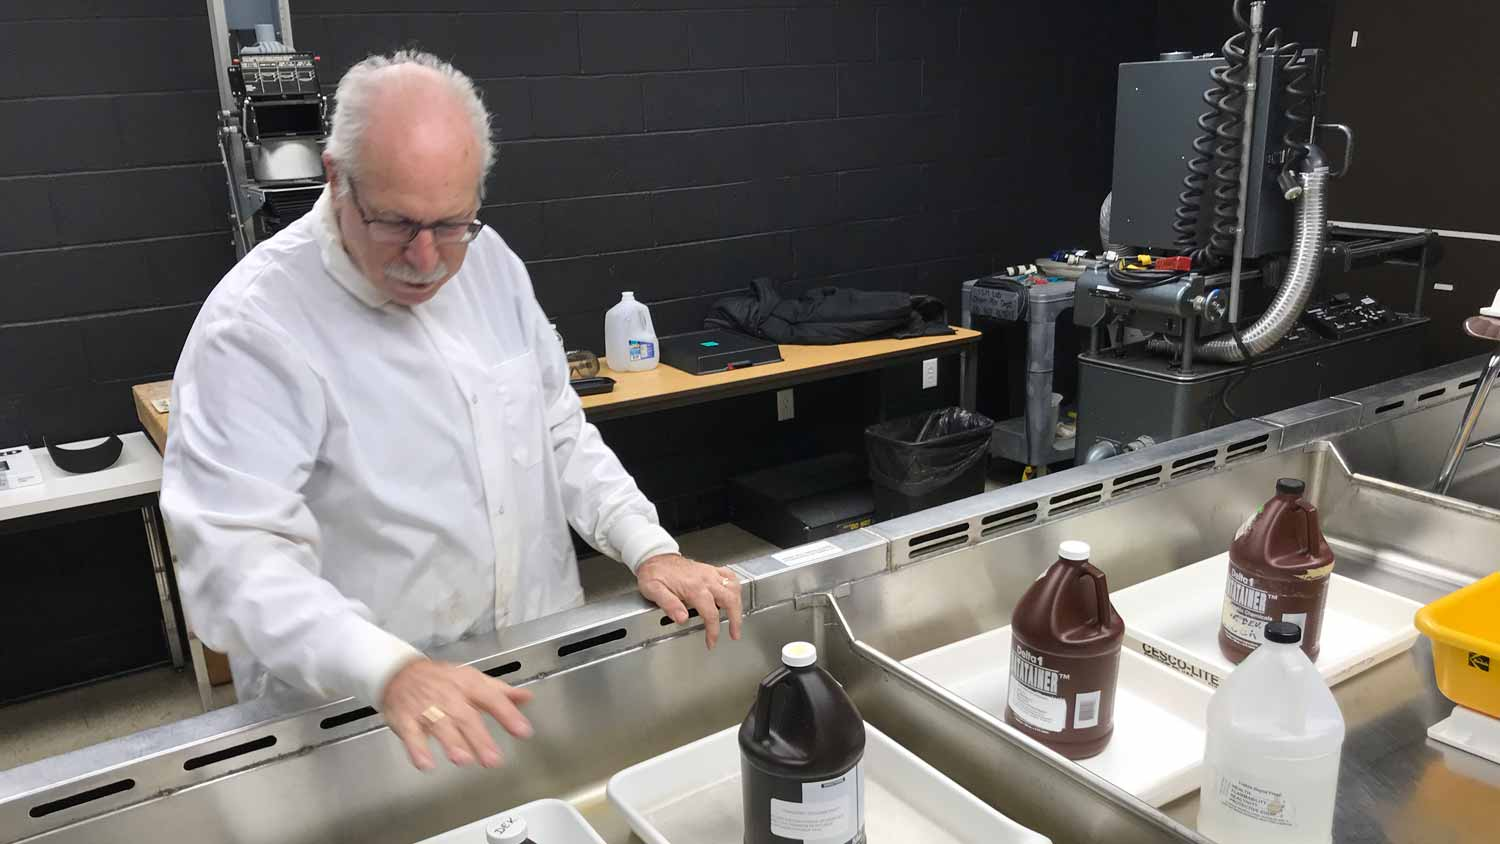 A man wearing a white coat looking at image development chemicals in a long sink with black walls in the background